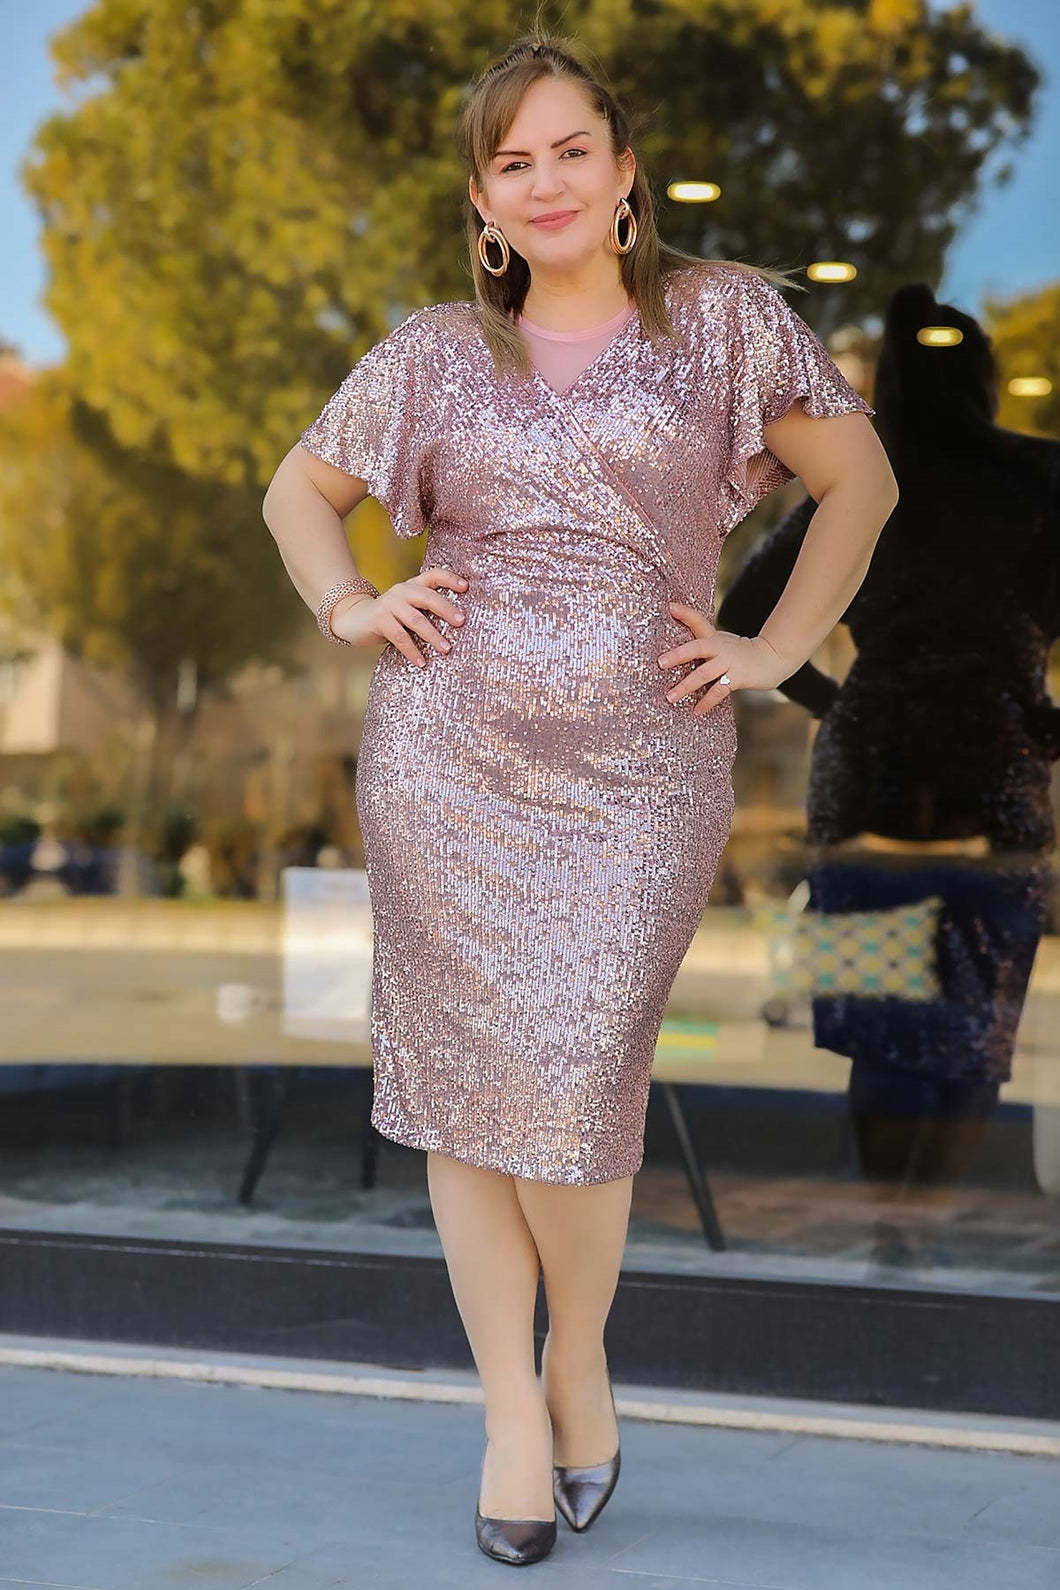 Women's Oversize Sequined Dusty Rose Evening Dress